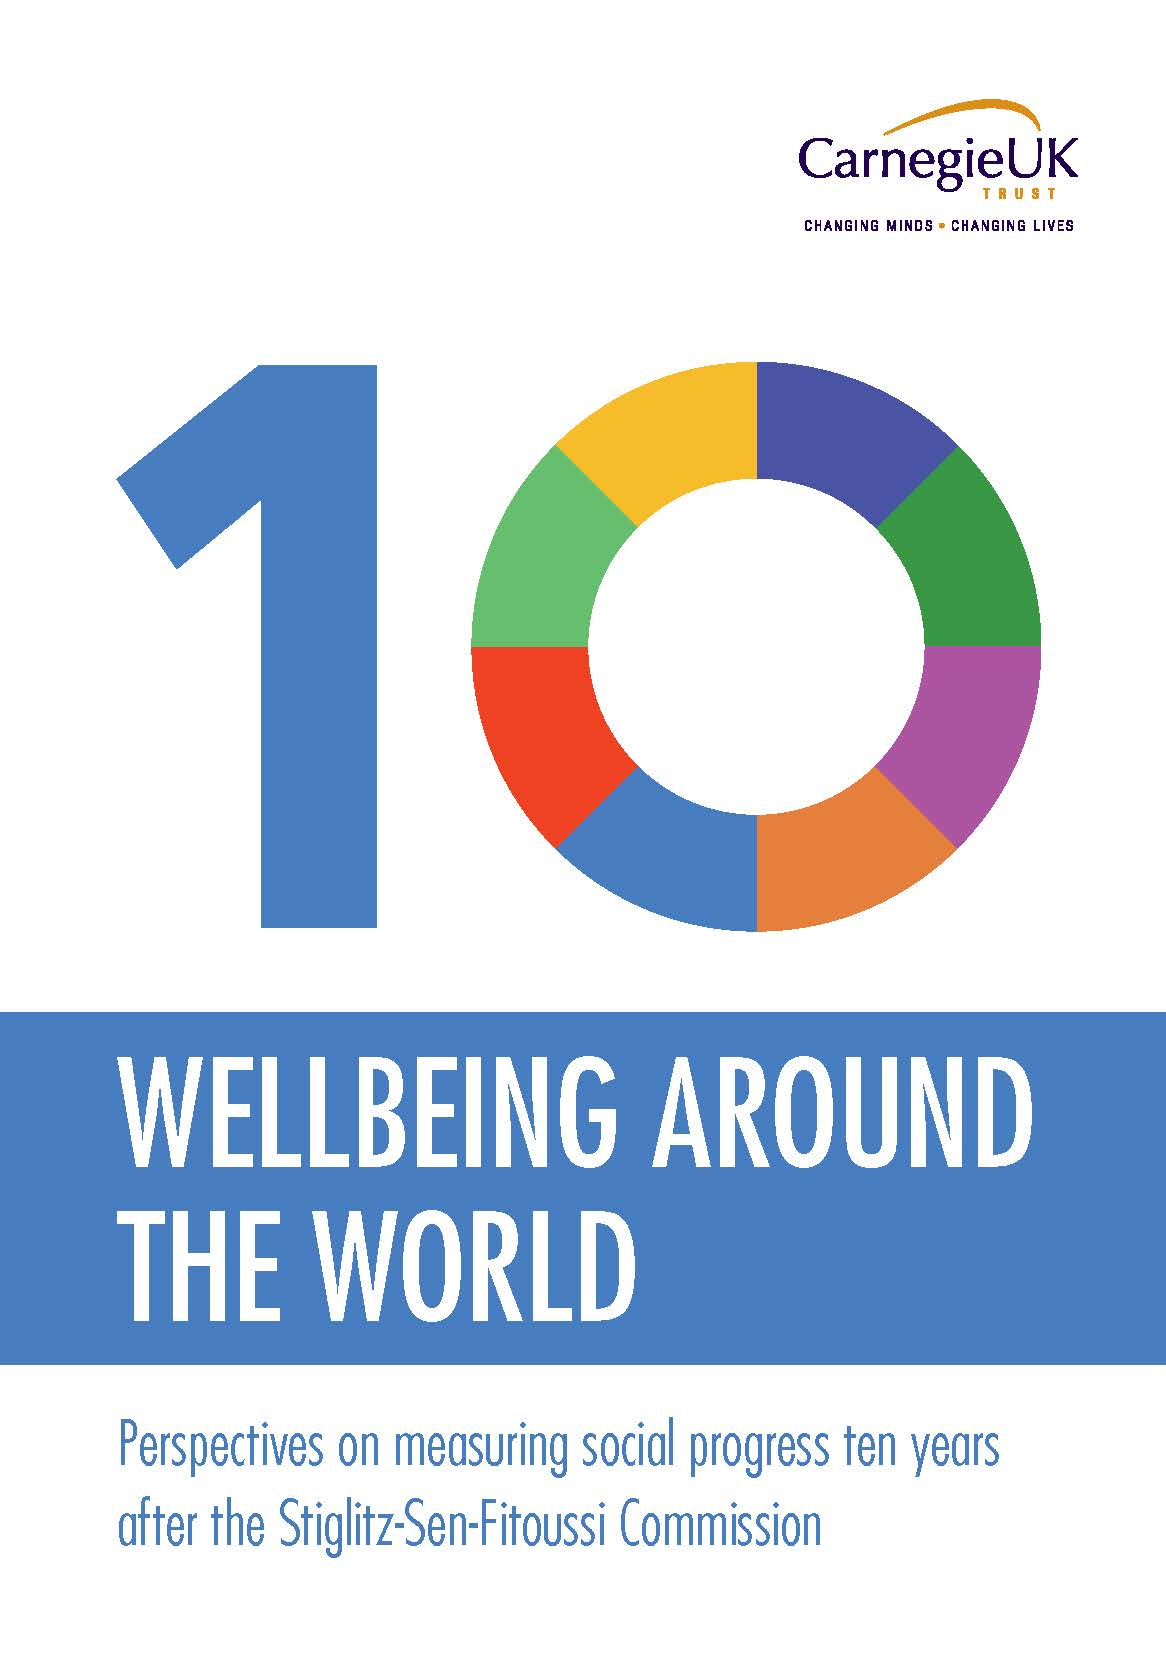 Wellbeing around the world: Perspectives on measuring social progress ten years after the Stiglitz-Sen-Fitoussi Commission